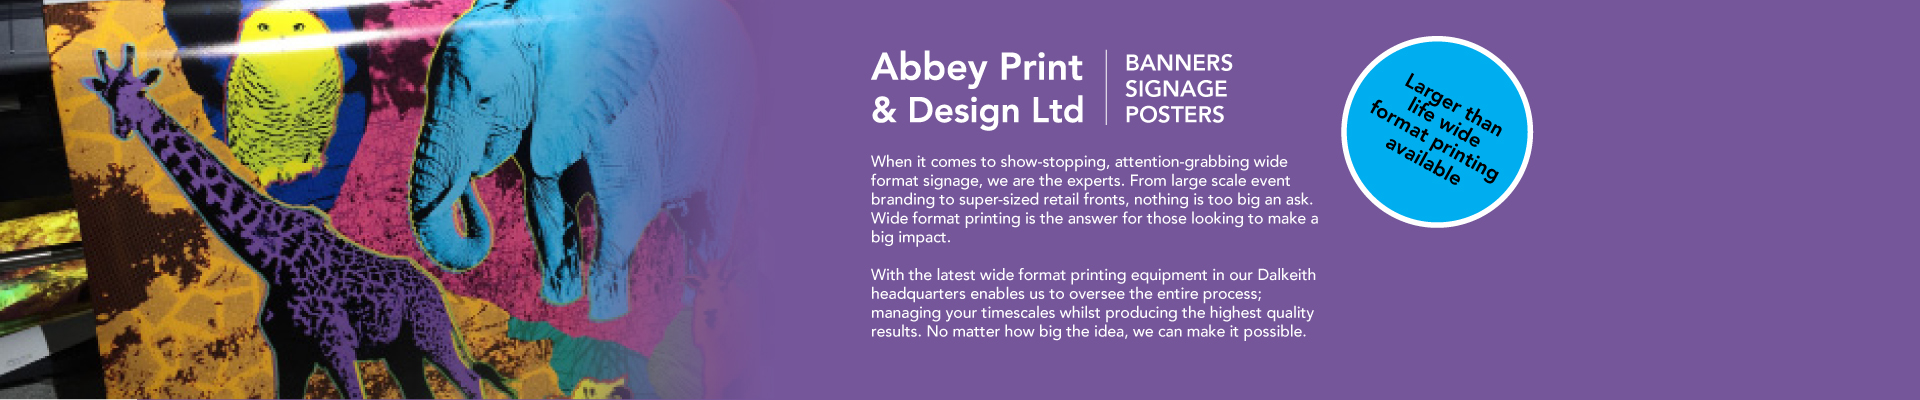 abbey-print_wide-format-printing